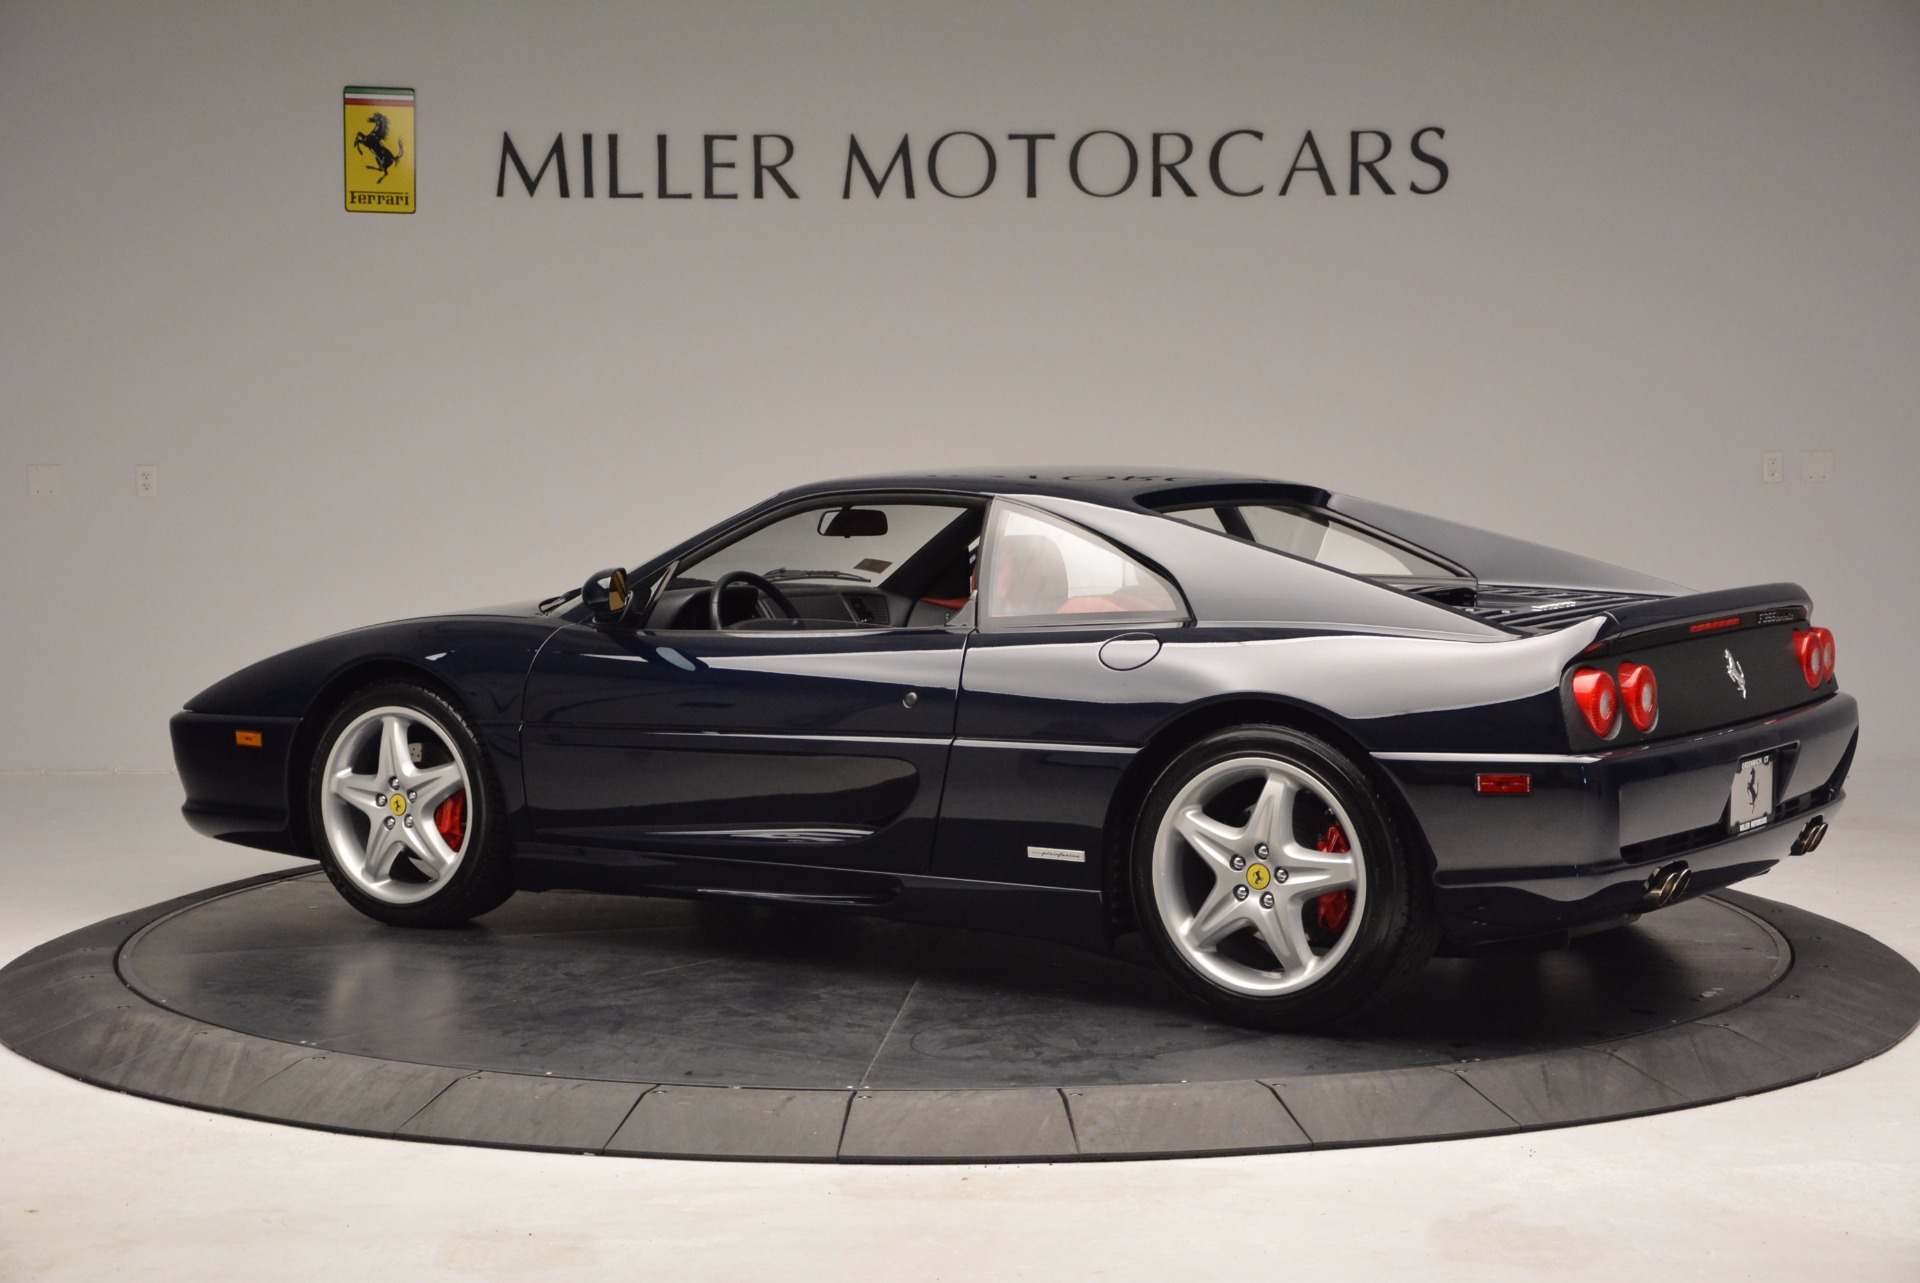 Used 1999 Ferrari 355 Berlinetta For Sale In Westport, CT 855_p5